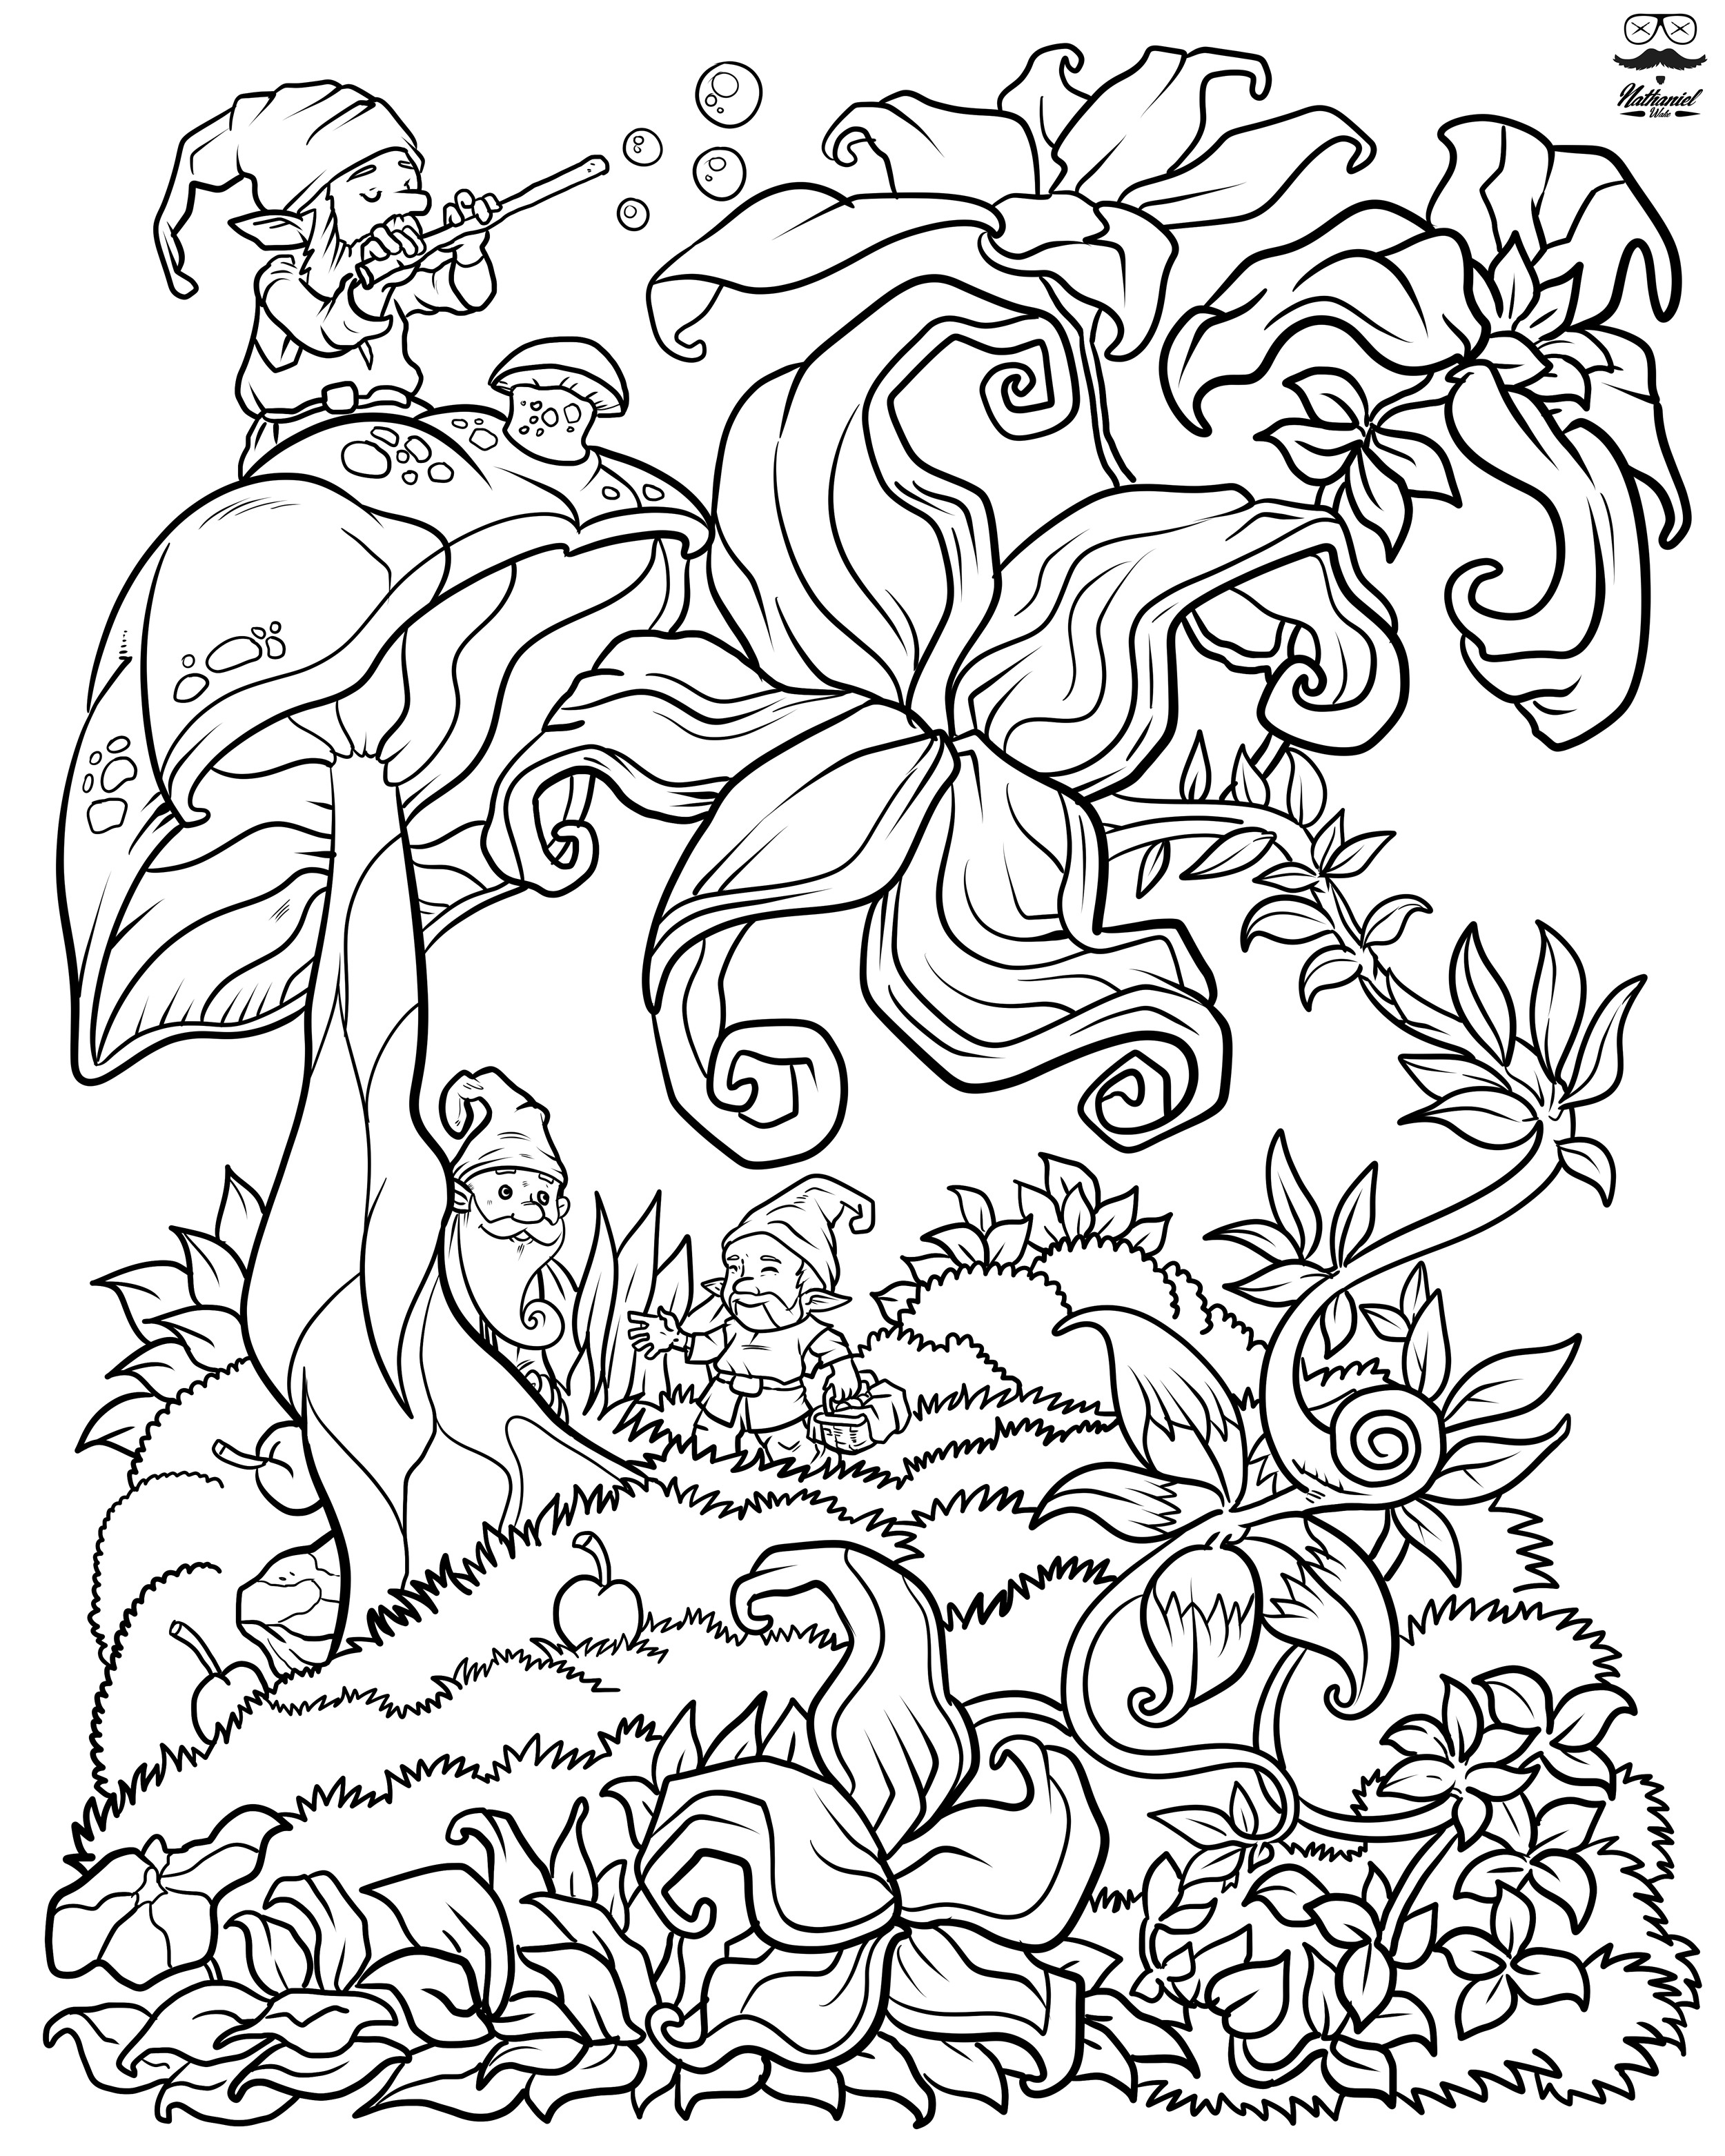 Best ideas about Coloring Books Adult . Save or Pin Floral Fantasy Digital Version Adult Coloring Book Now.